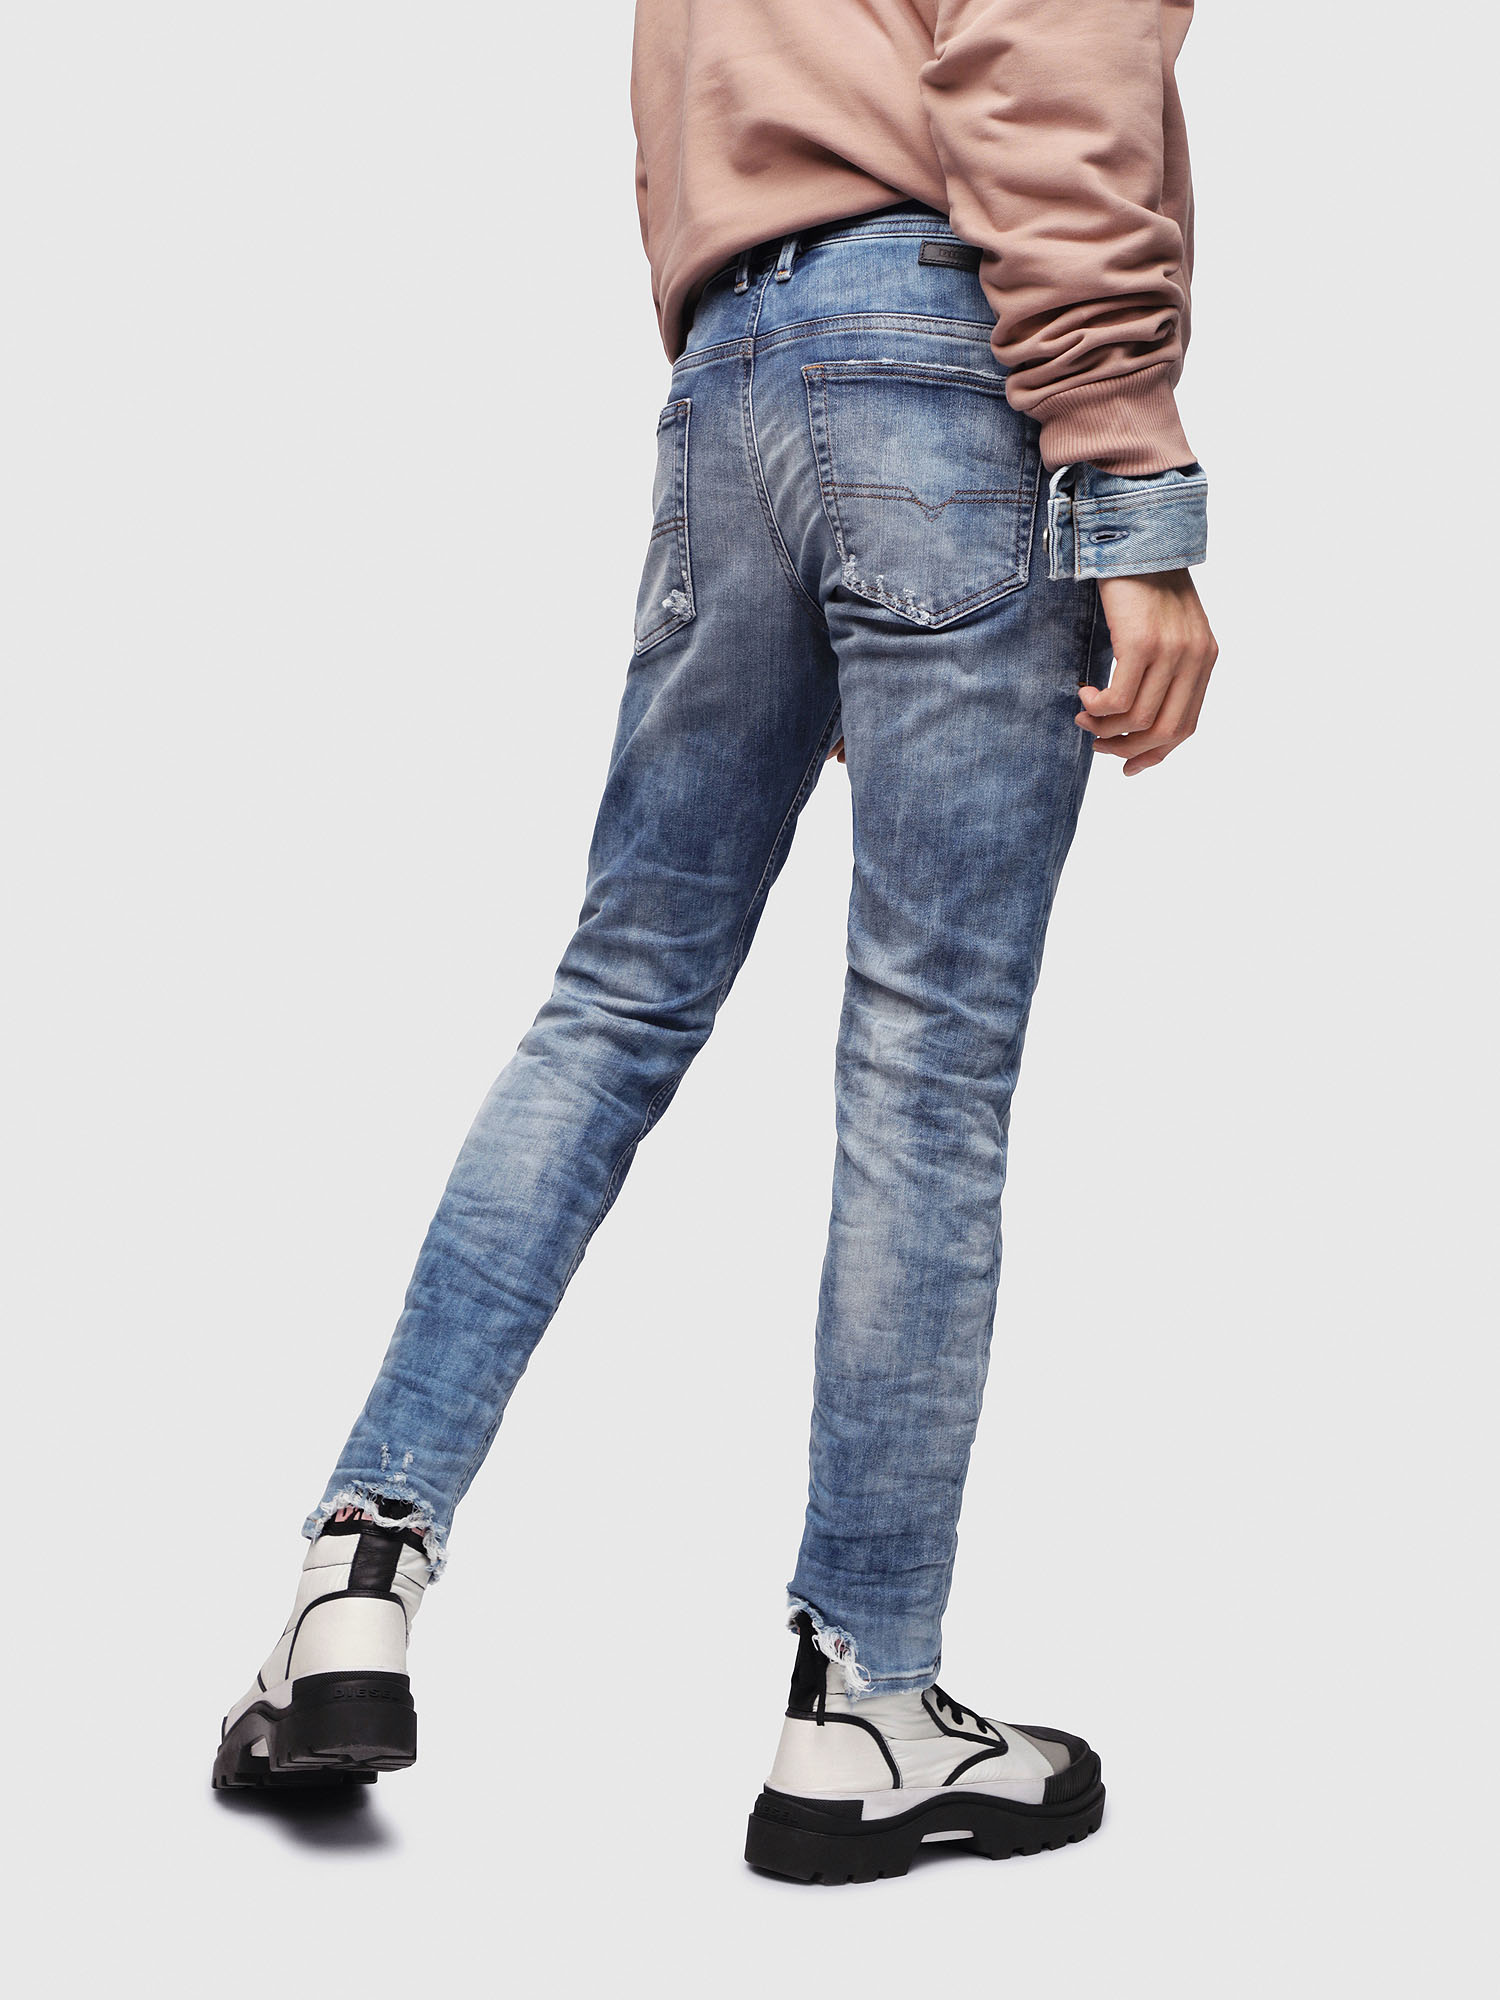 Diesel - Thommer JoggJeans 087AC,  - Jeans - Image 2